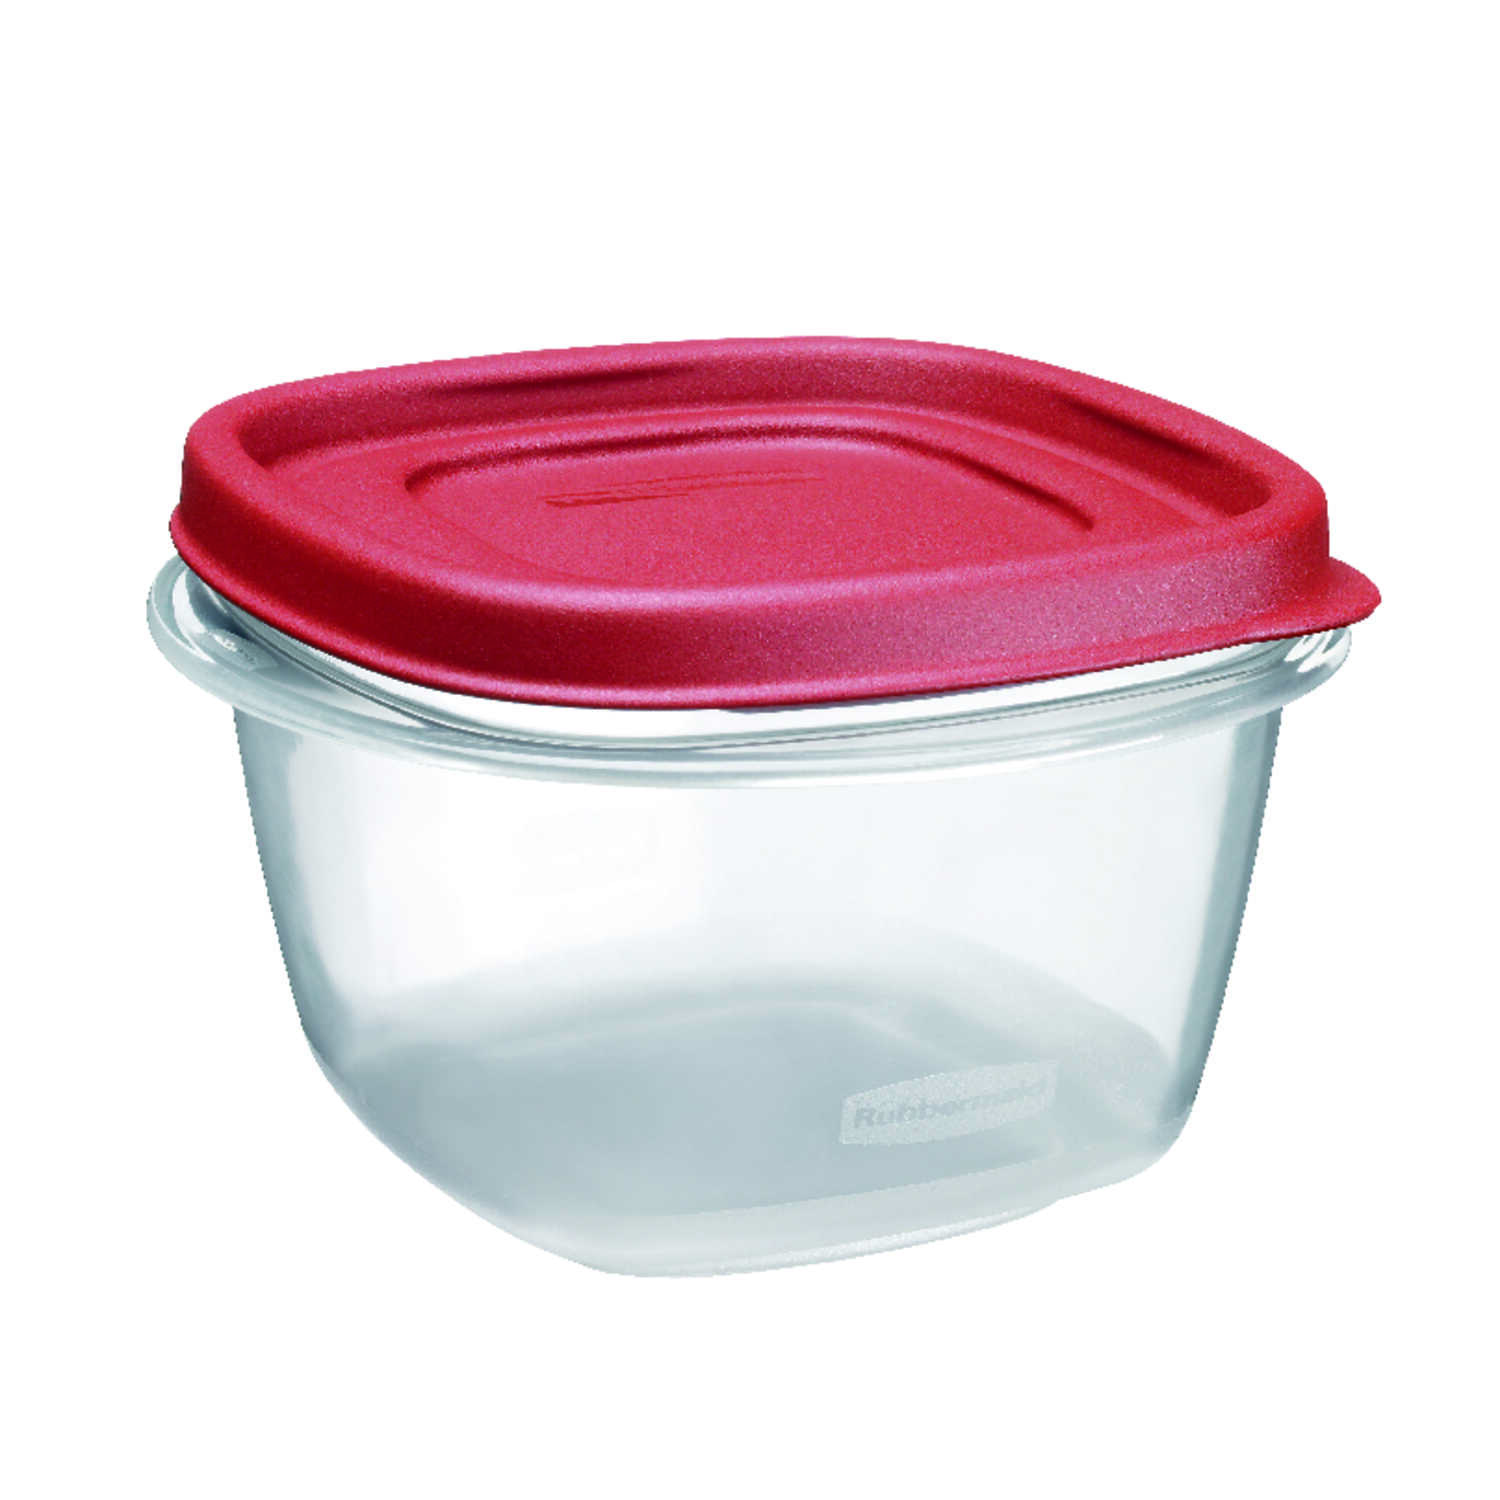 Rubbermaid  2 cups Food Storage Container